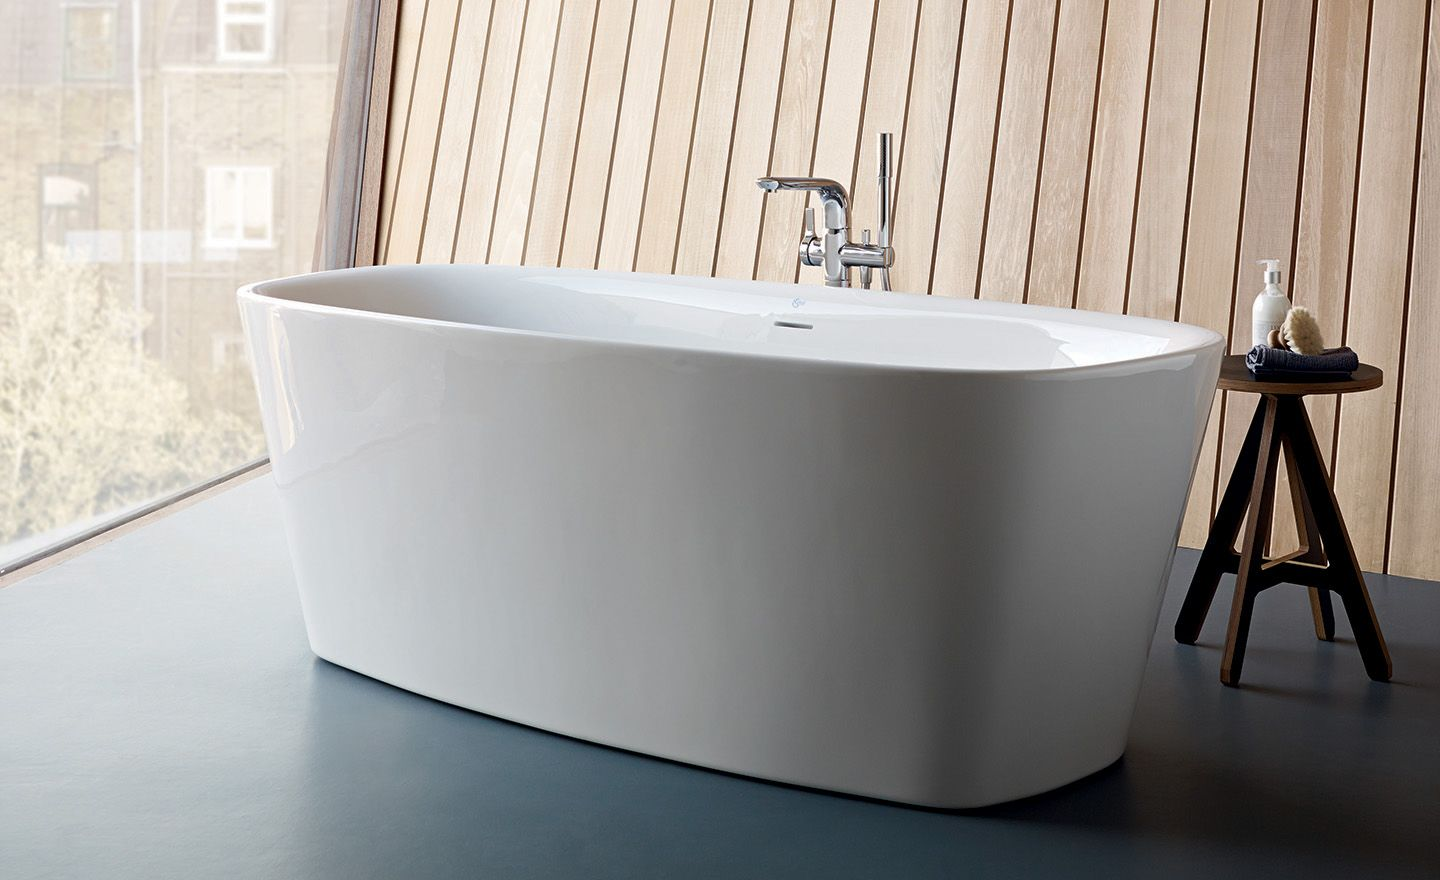 Pin On Freestanding Baths